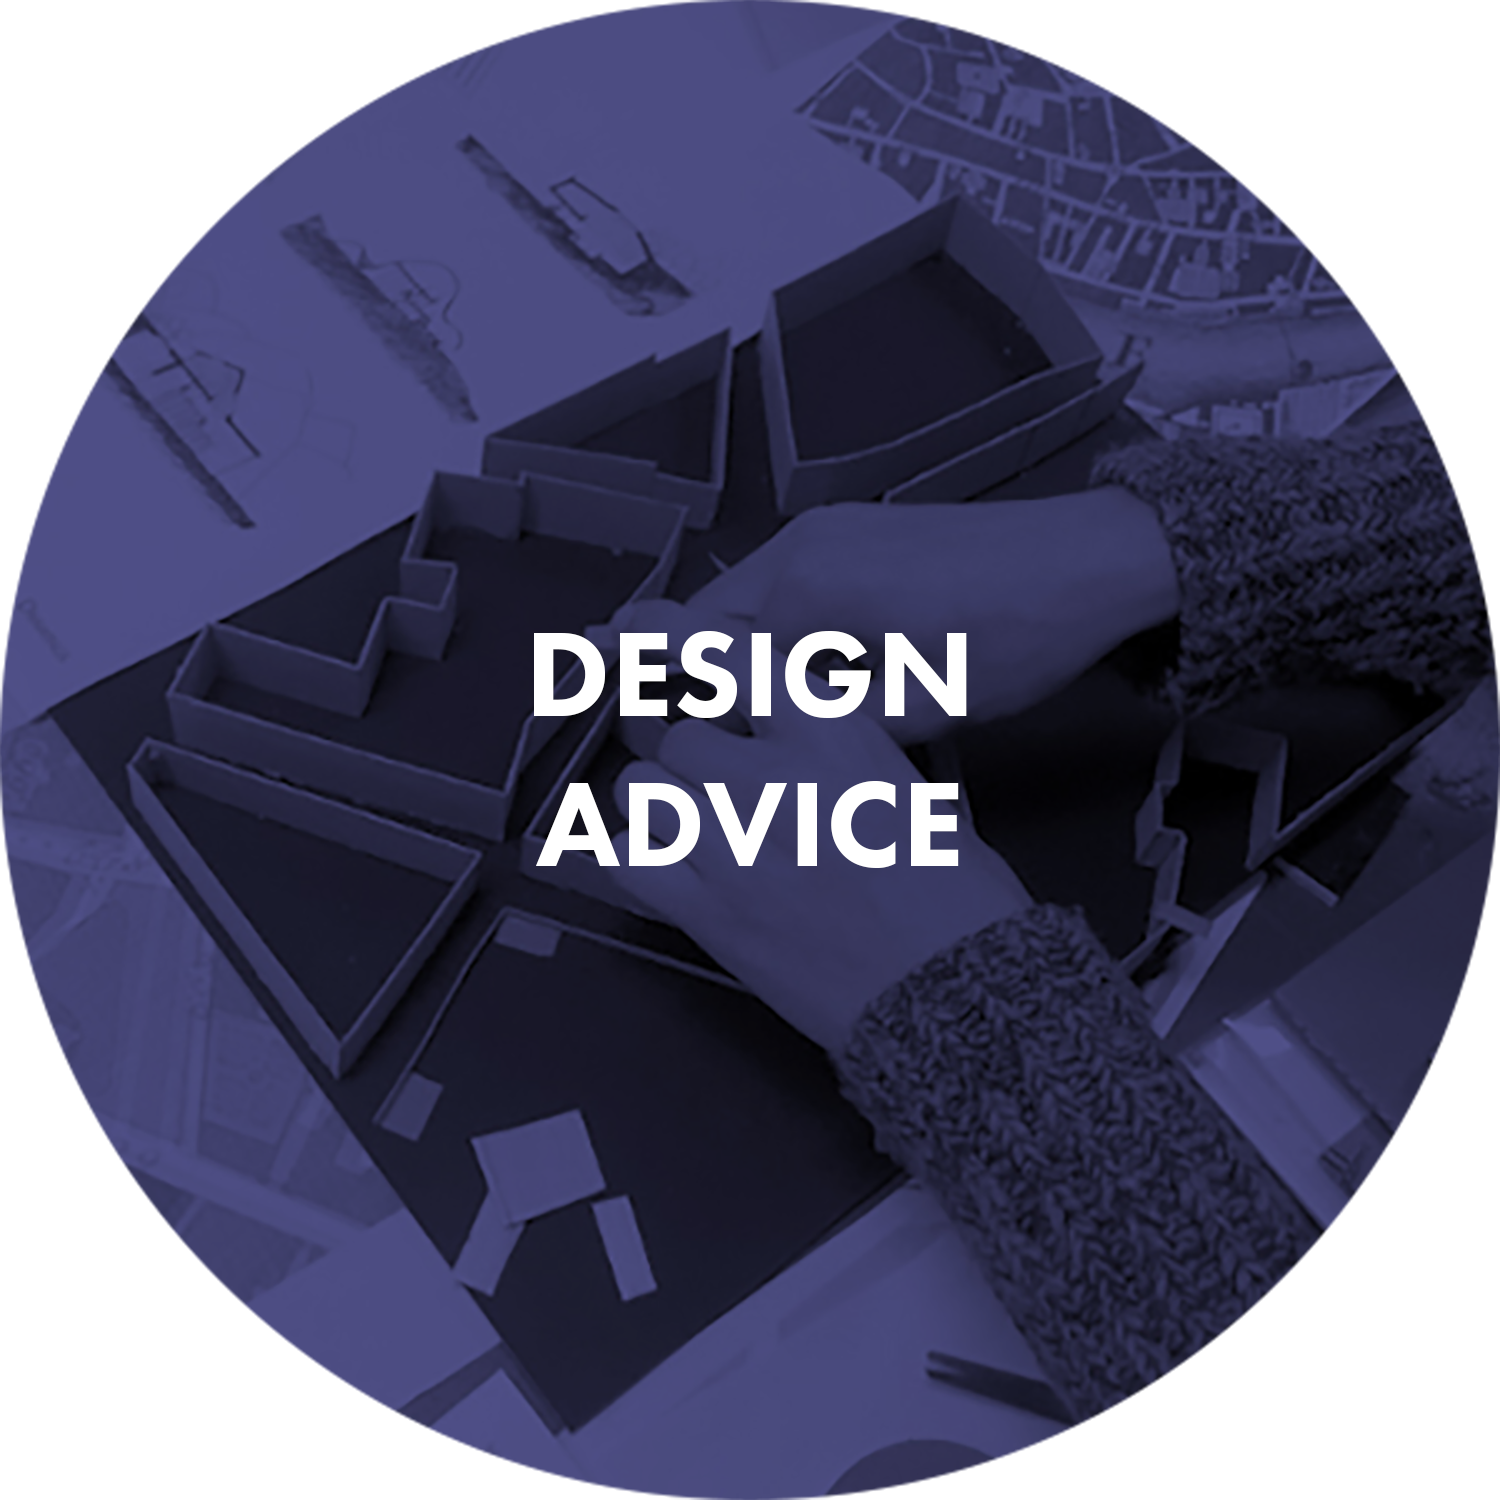 4-DESIGN ADVICE_circle_title.png